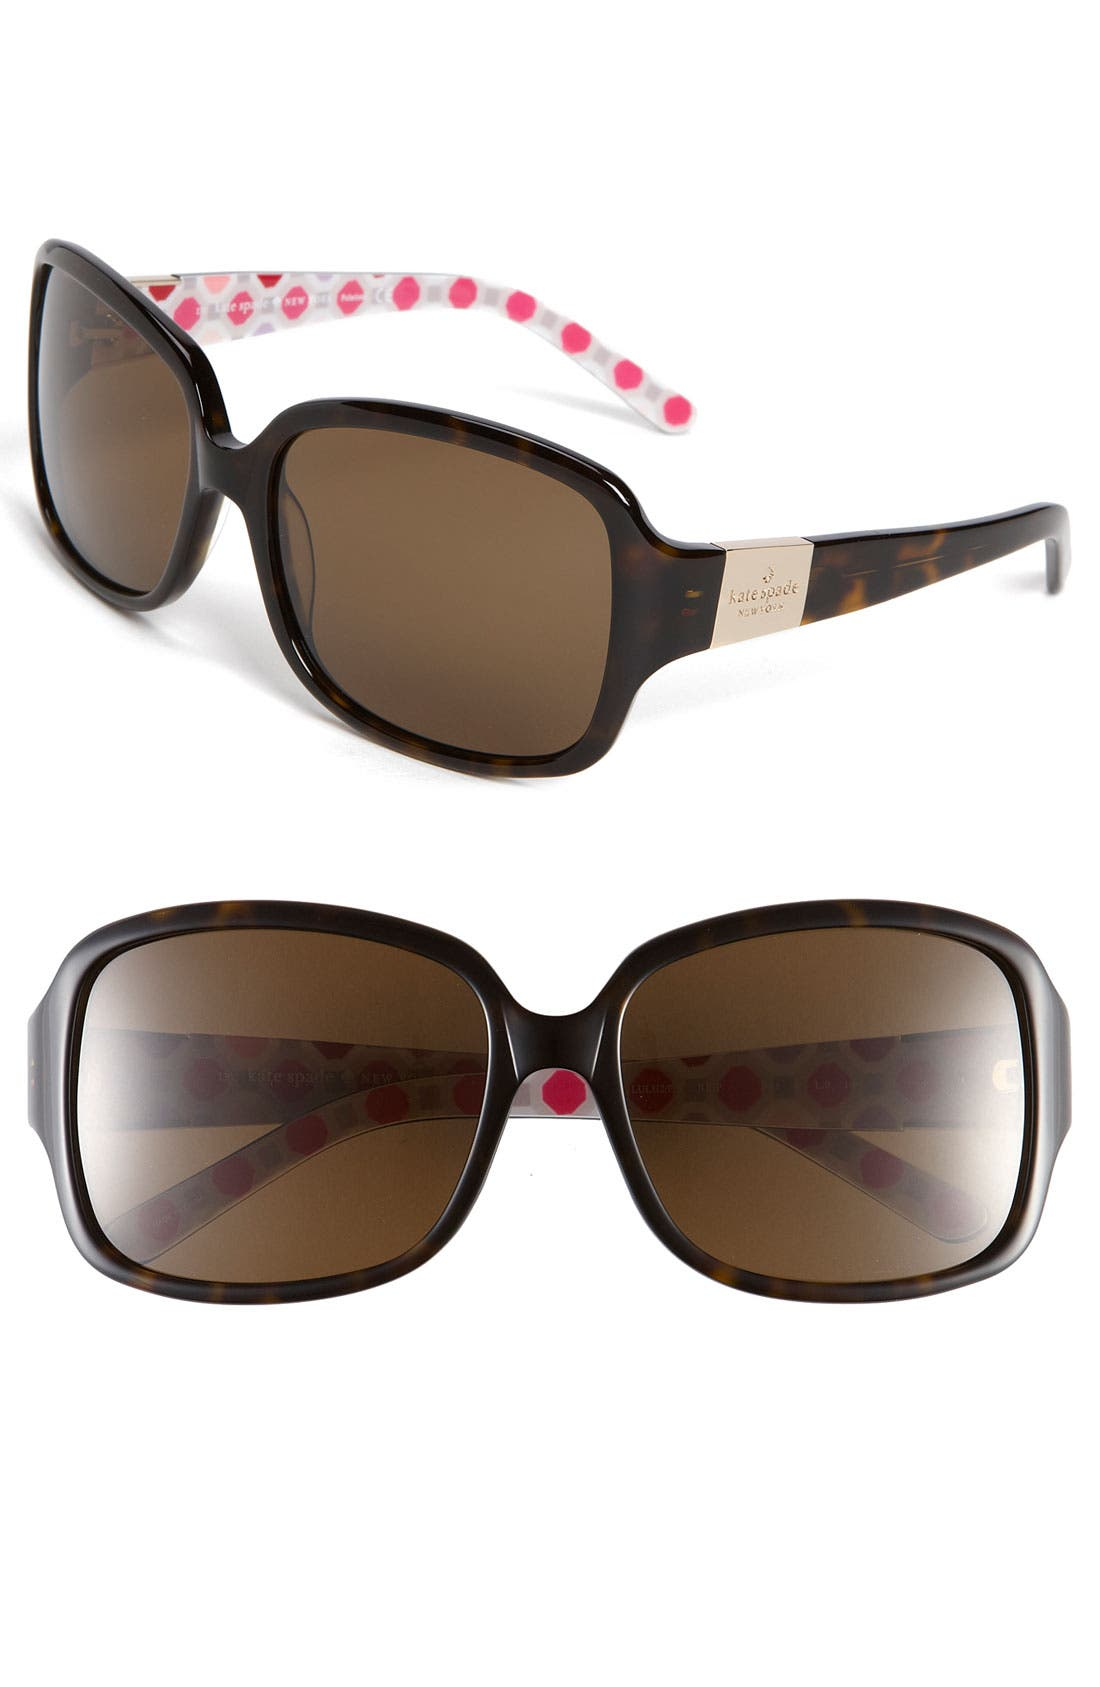 Main Image - kate spade new york 'lulu 2' 55mm polarized sunglasses